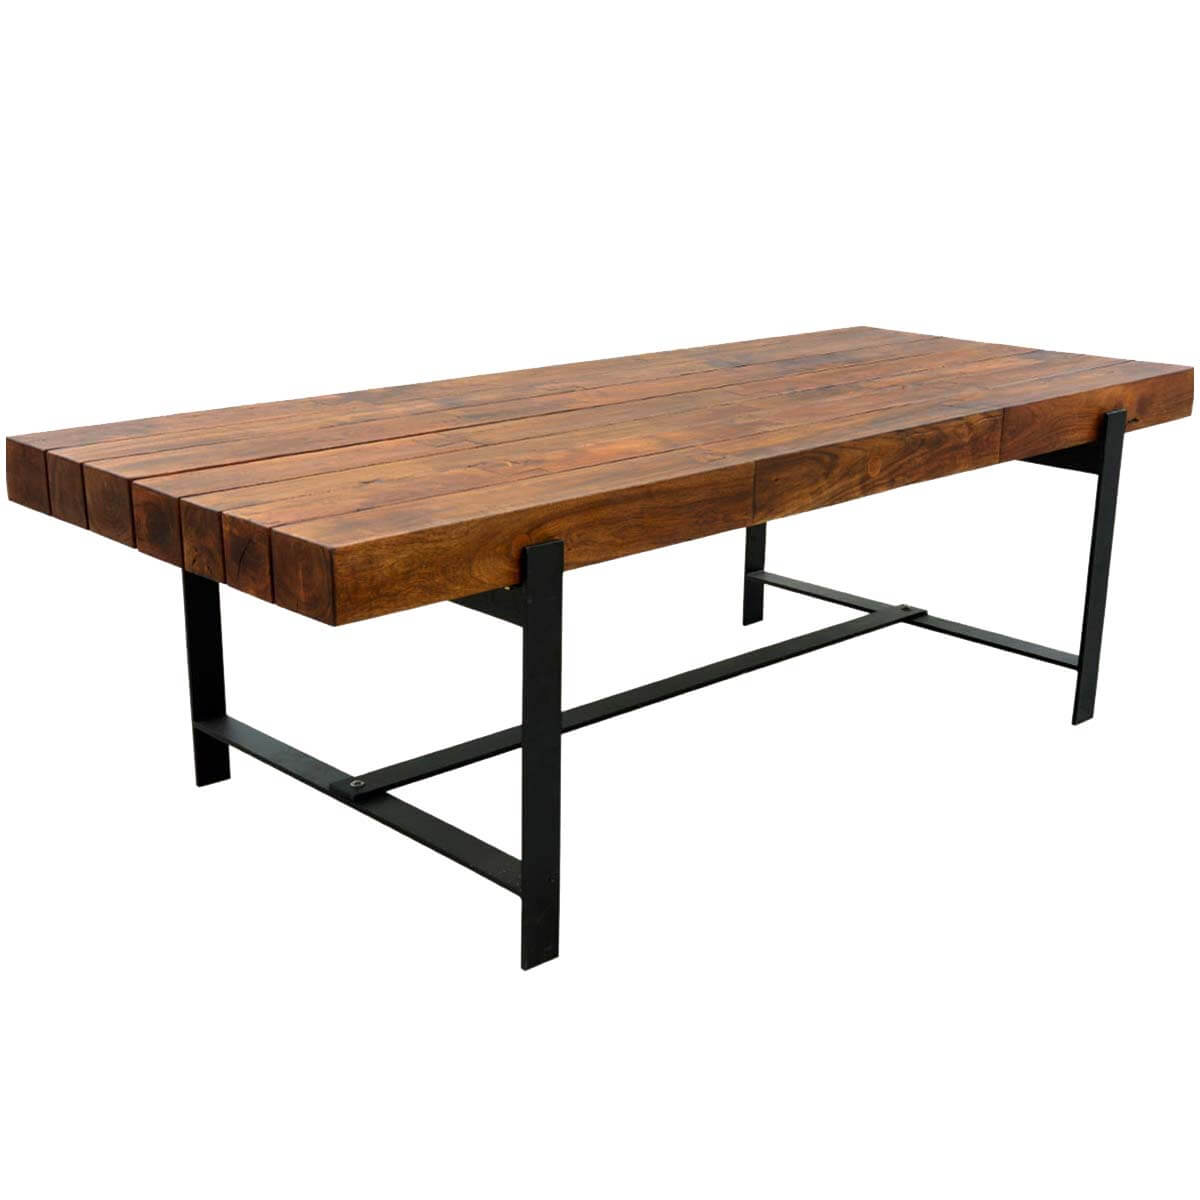 Industrial iron acacia wood 94 large rustic dining table Rustic wood dining table